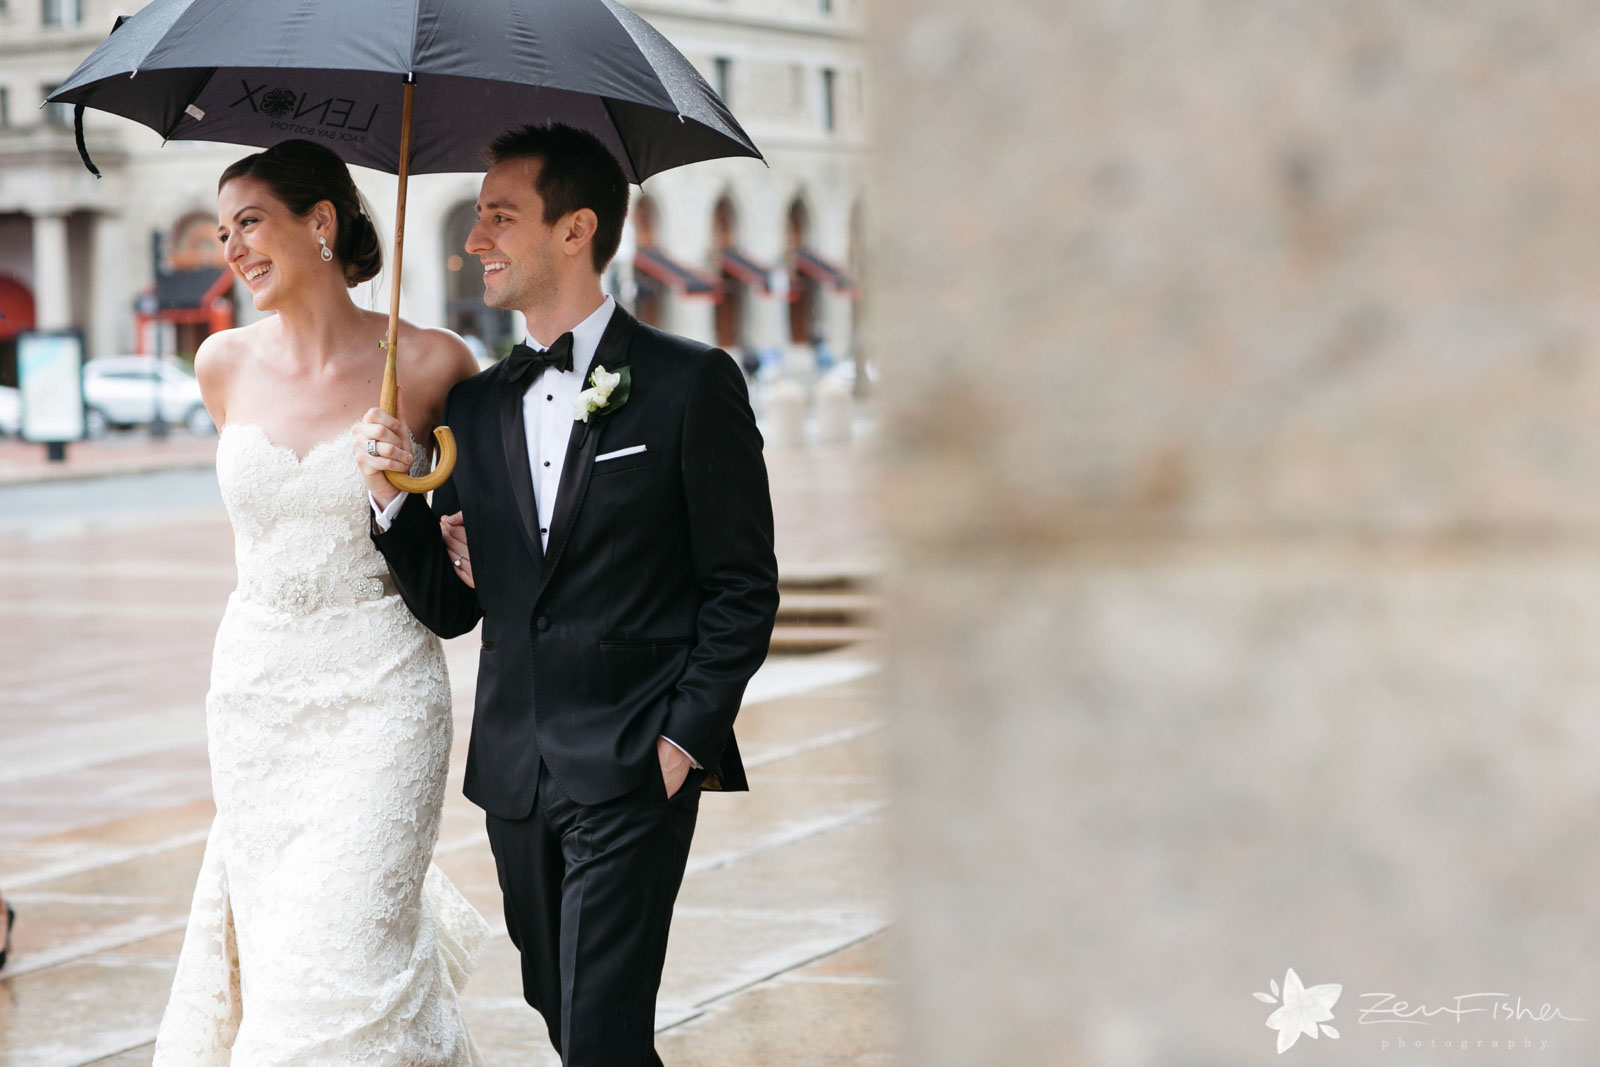 Peeking around the corner at bride and groom walking together under umbrella, smiling.